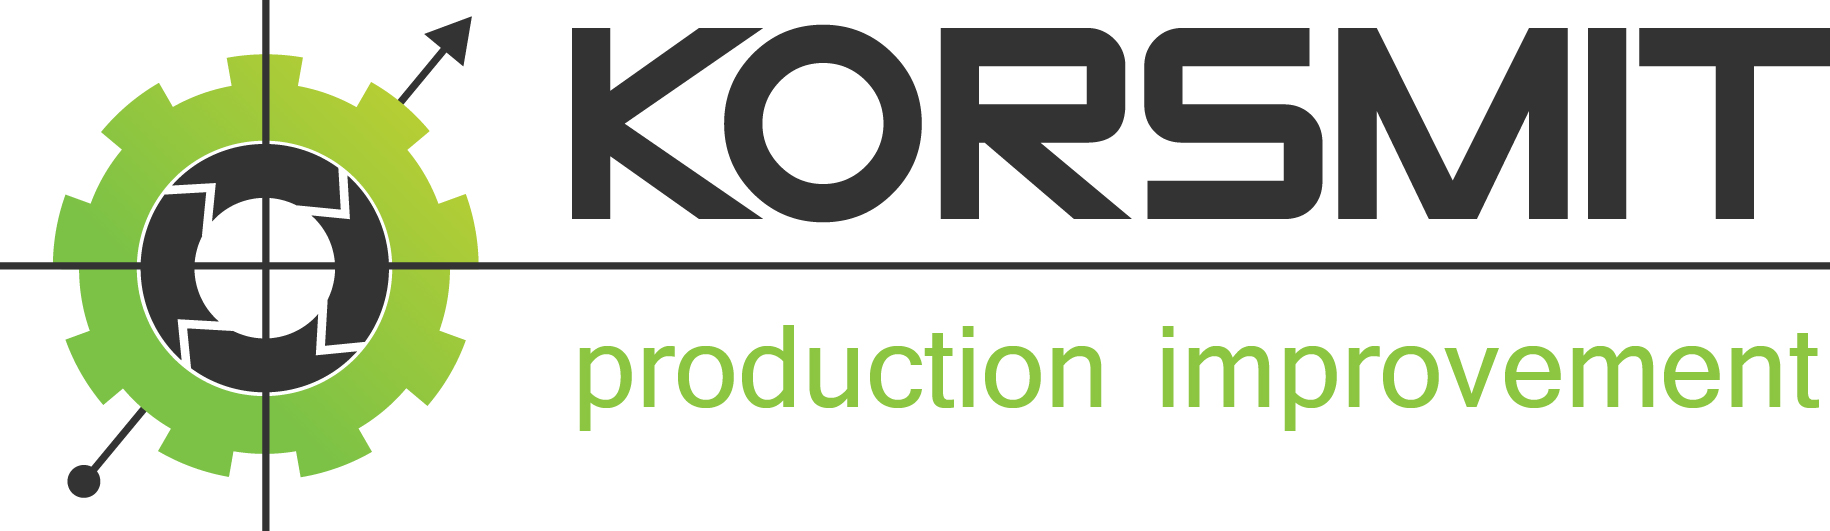 Korsmit Production Improvement